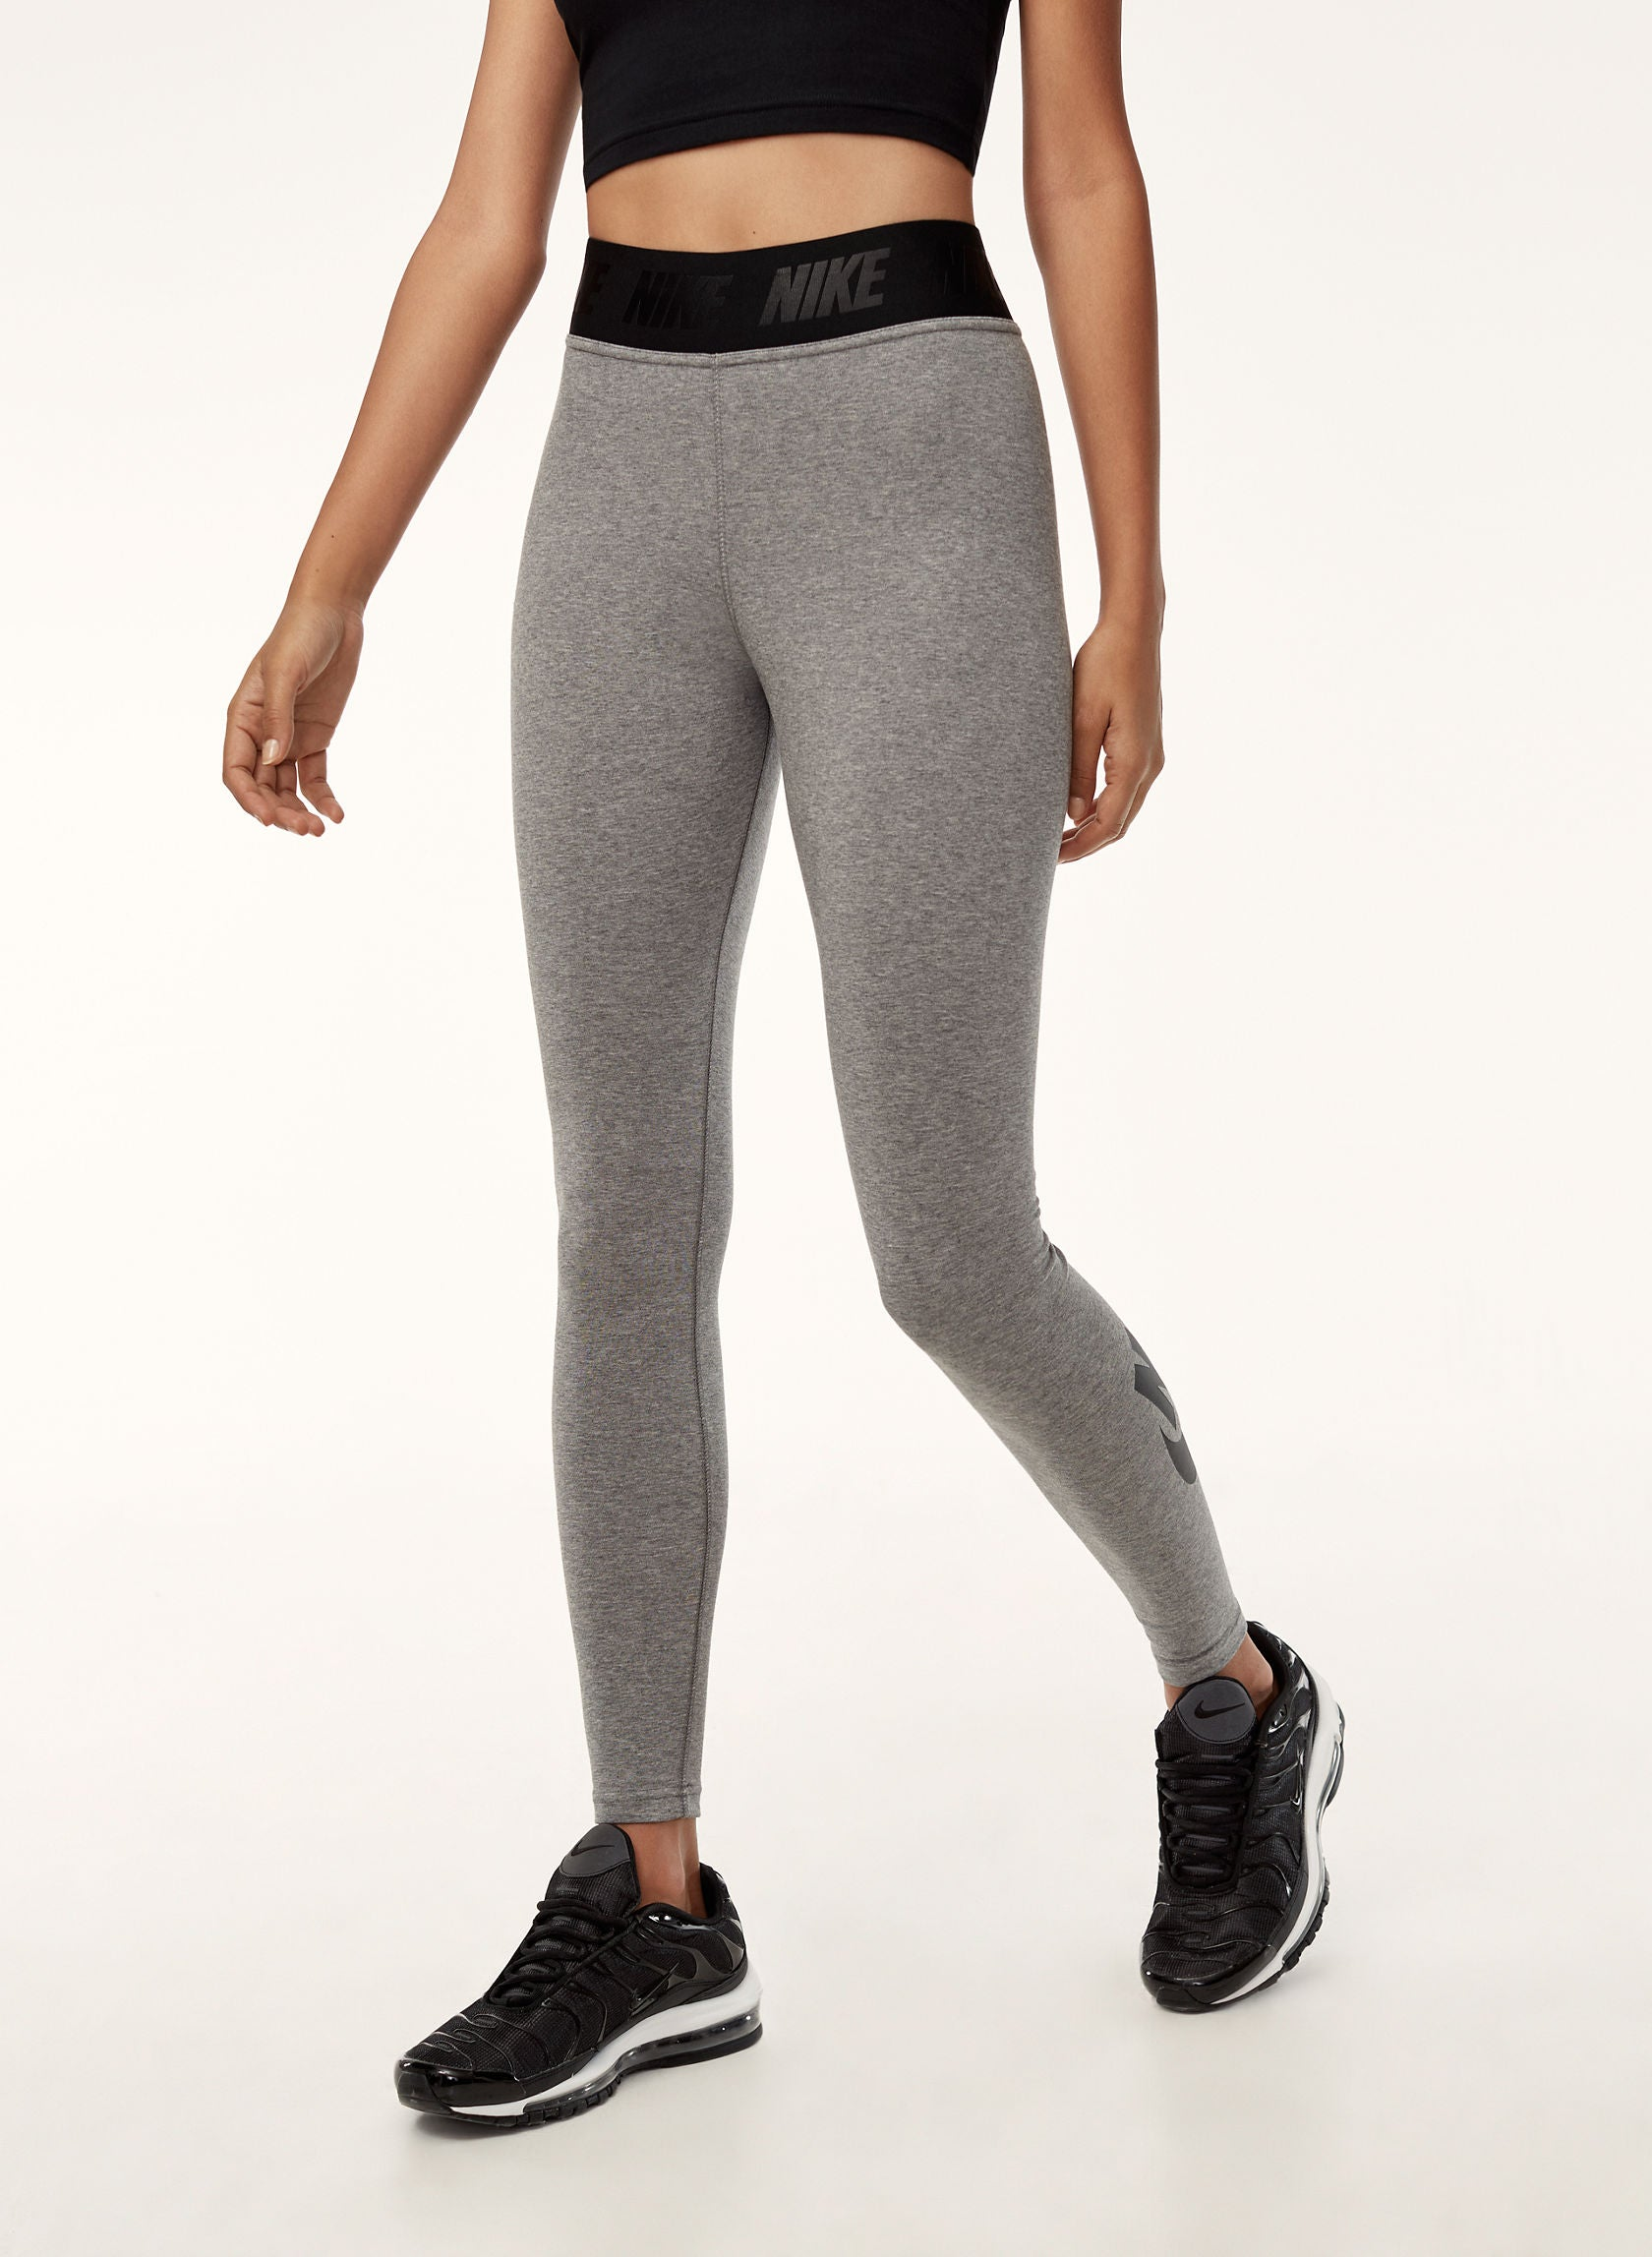 Nike Women's Sportswear Leg-A-See Leggings Carbon Heather/Black XL